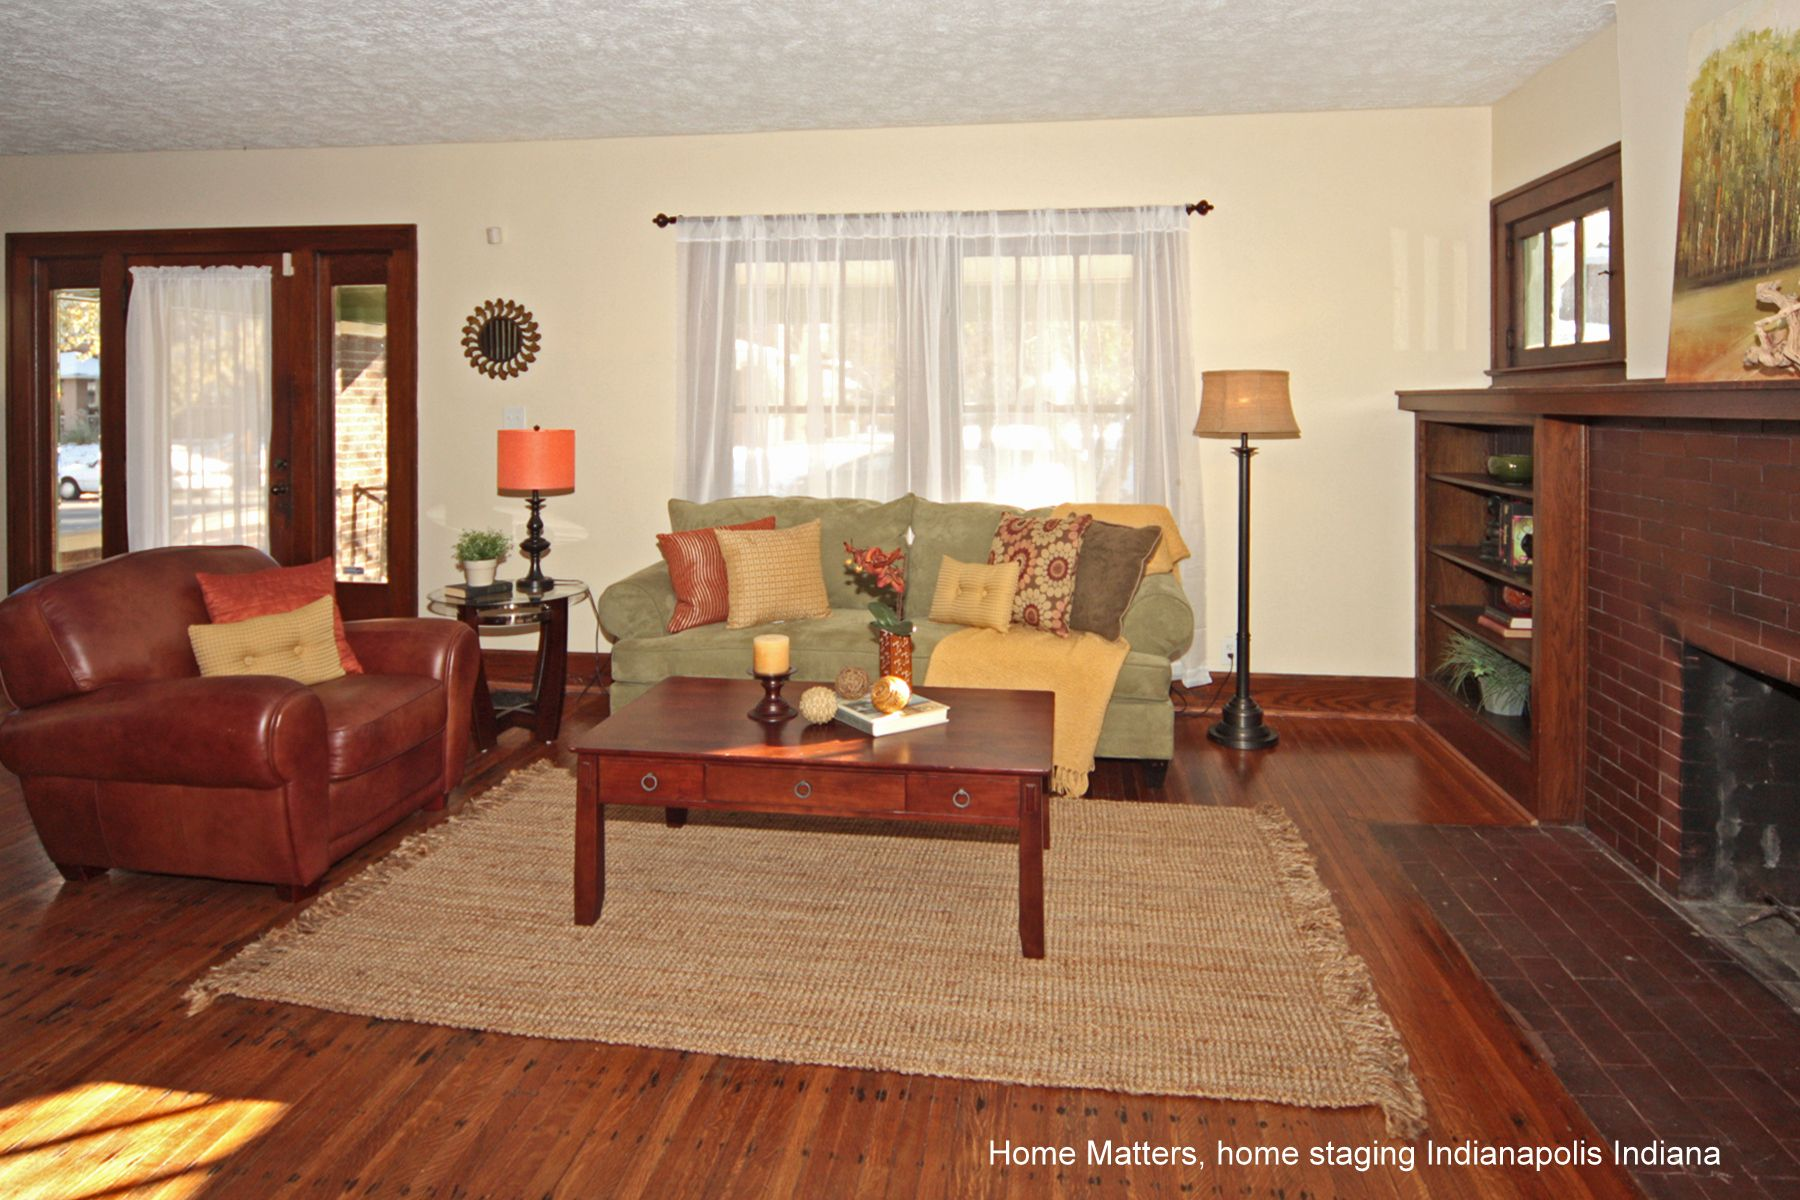 Home Matters, home staging Indianapolis